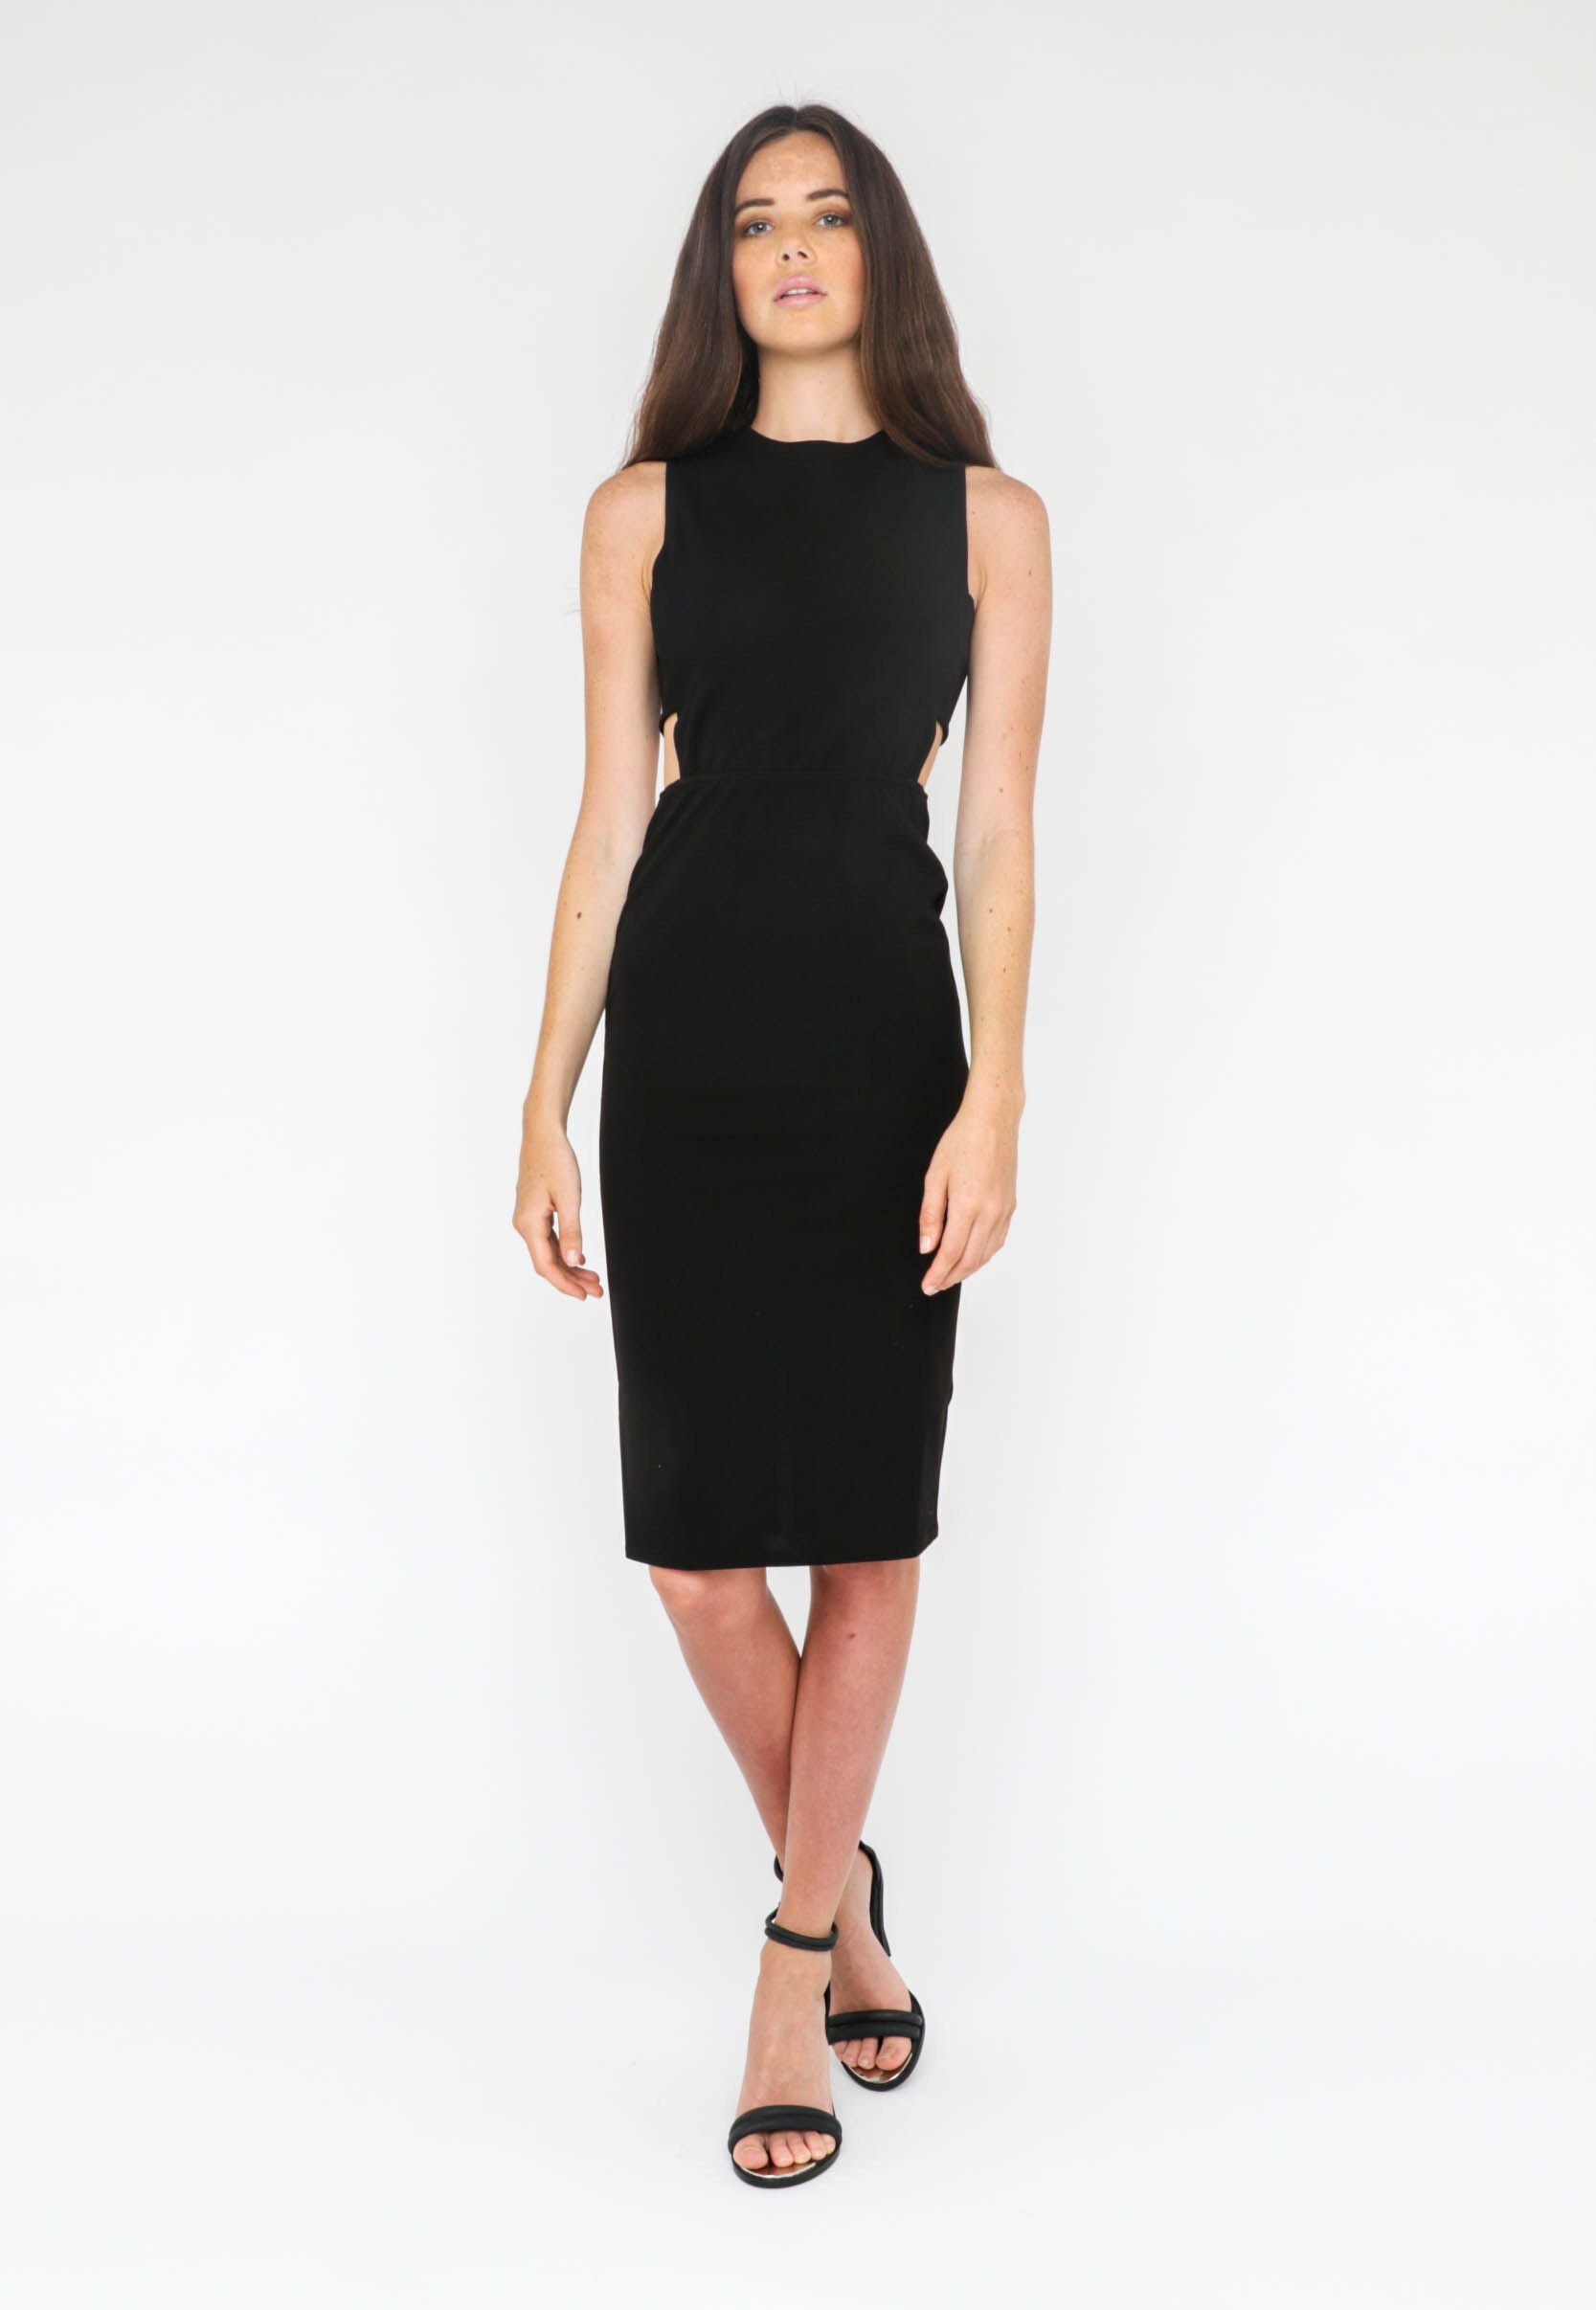 Jorge - Dress Crimson Midi - Black